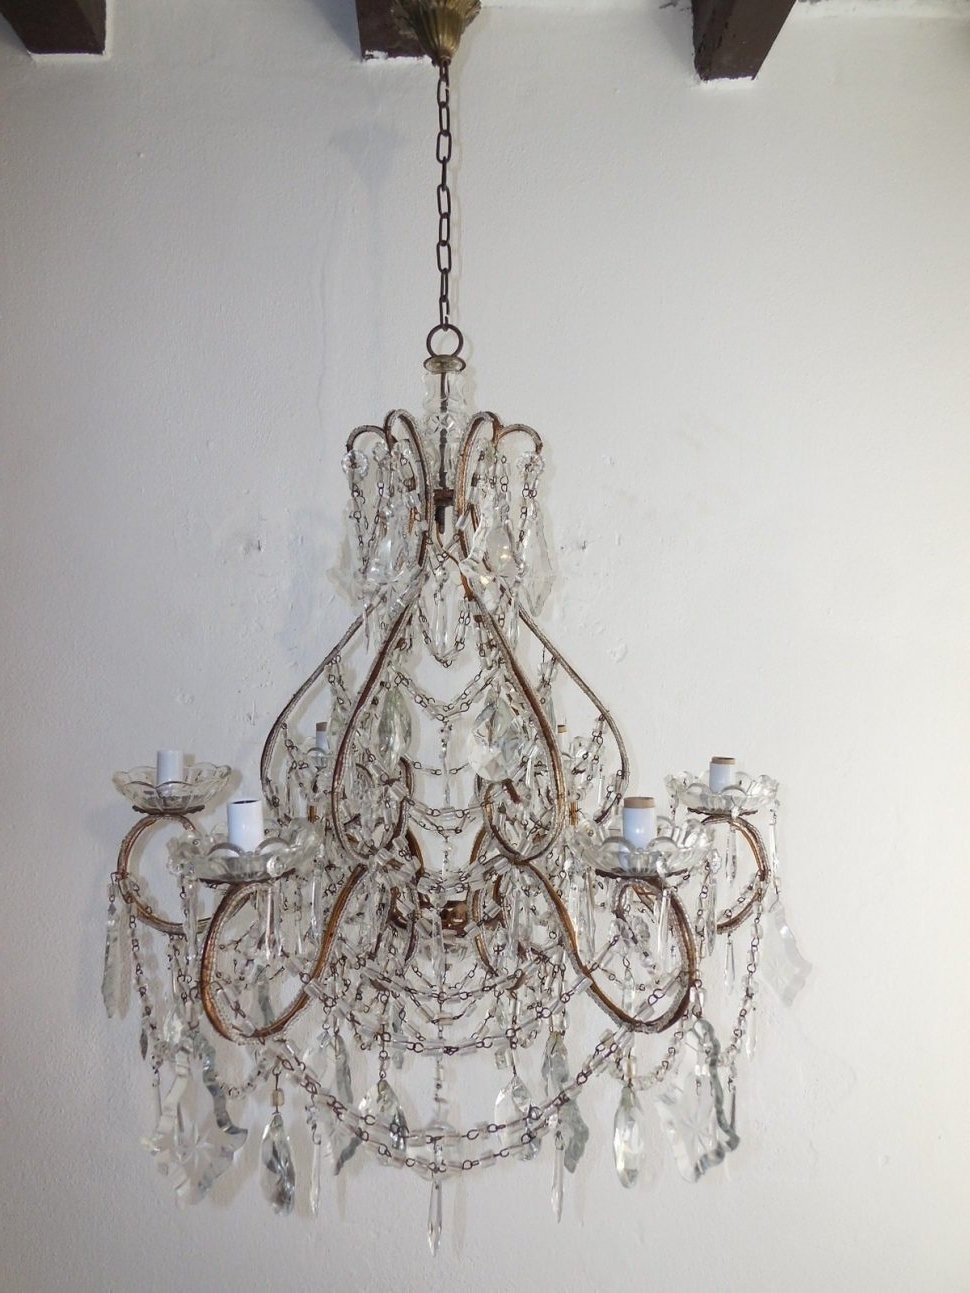 Lead Crystal Chandeliers In Latest Chandeliers : Lead Crystal Chandelier Prisms Chandeliers Design Lamp (View 20 of 20)